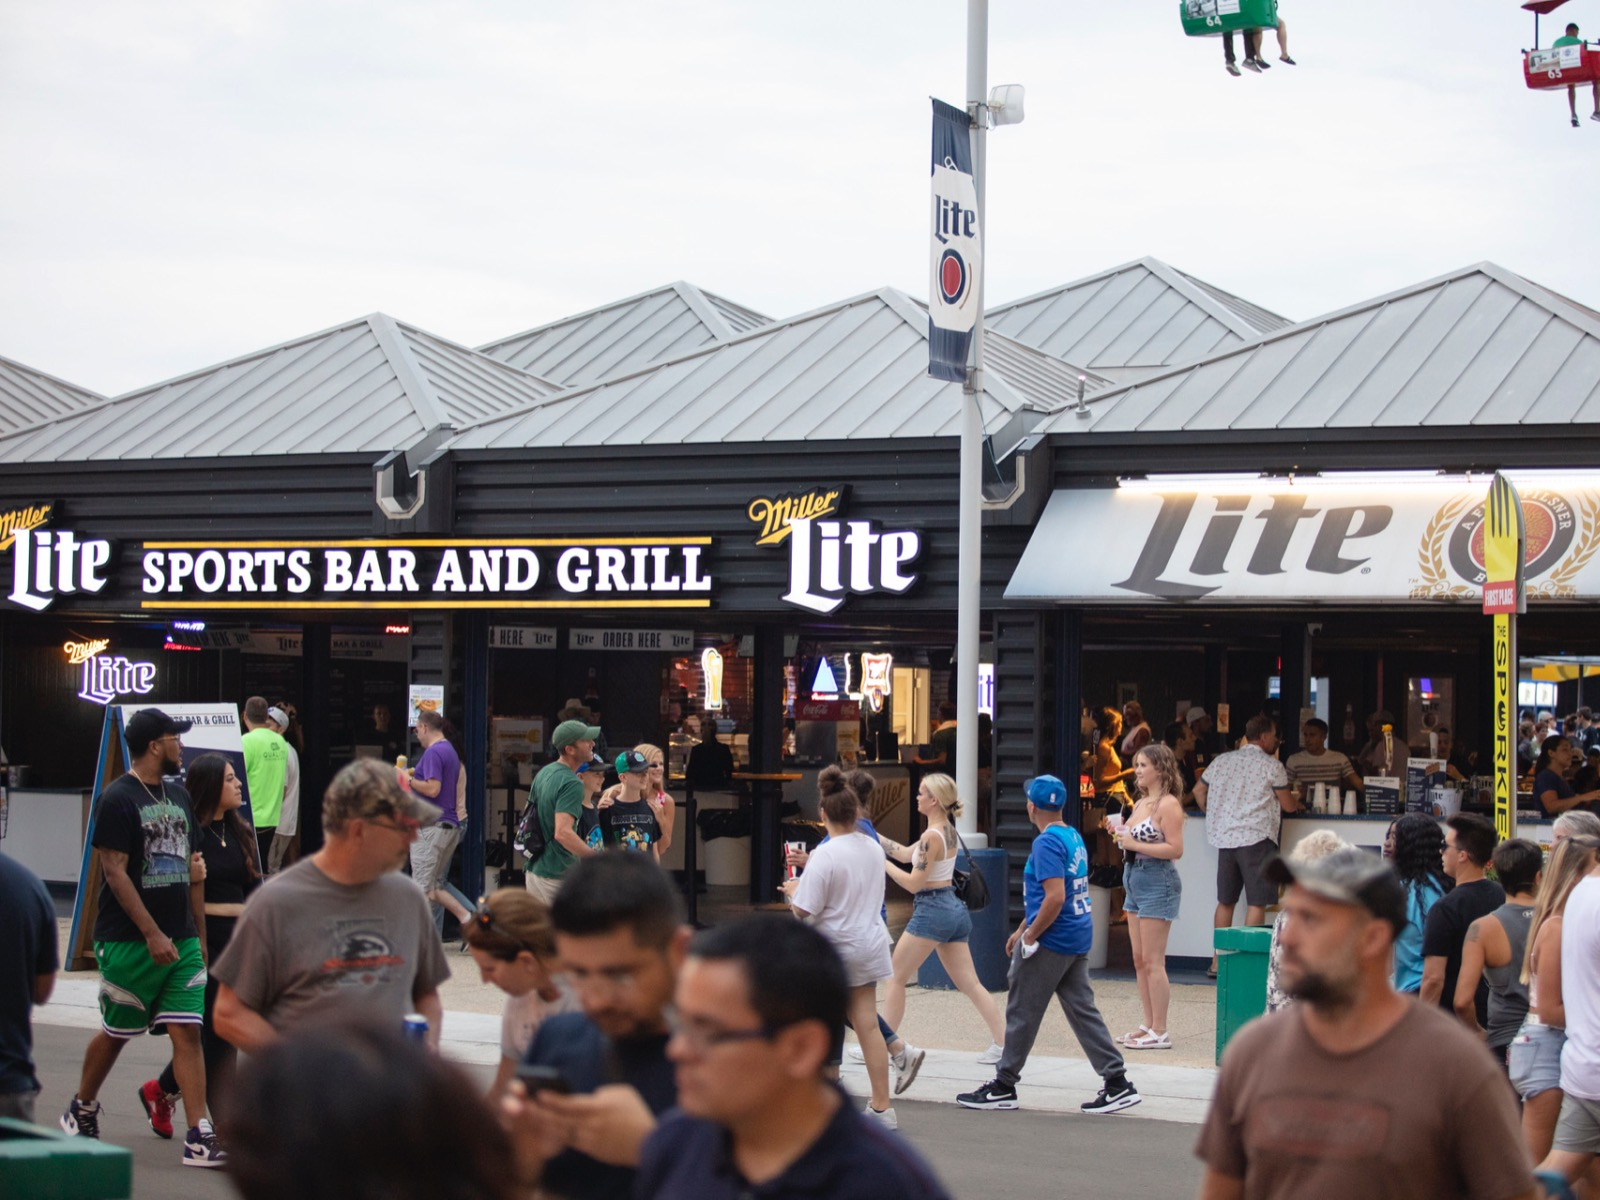 Miller Lite Sports Bar & Grill at the Wisconsin State Fair